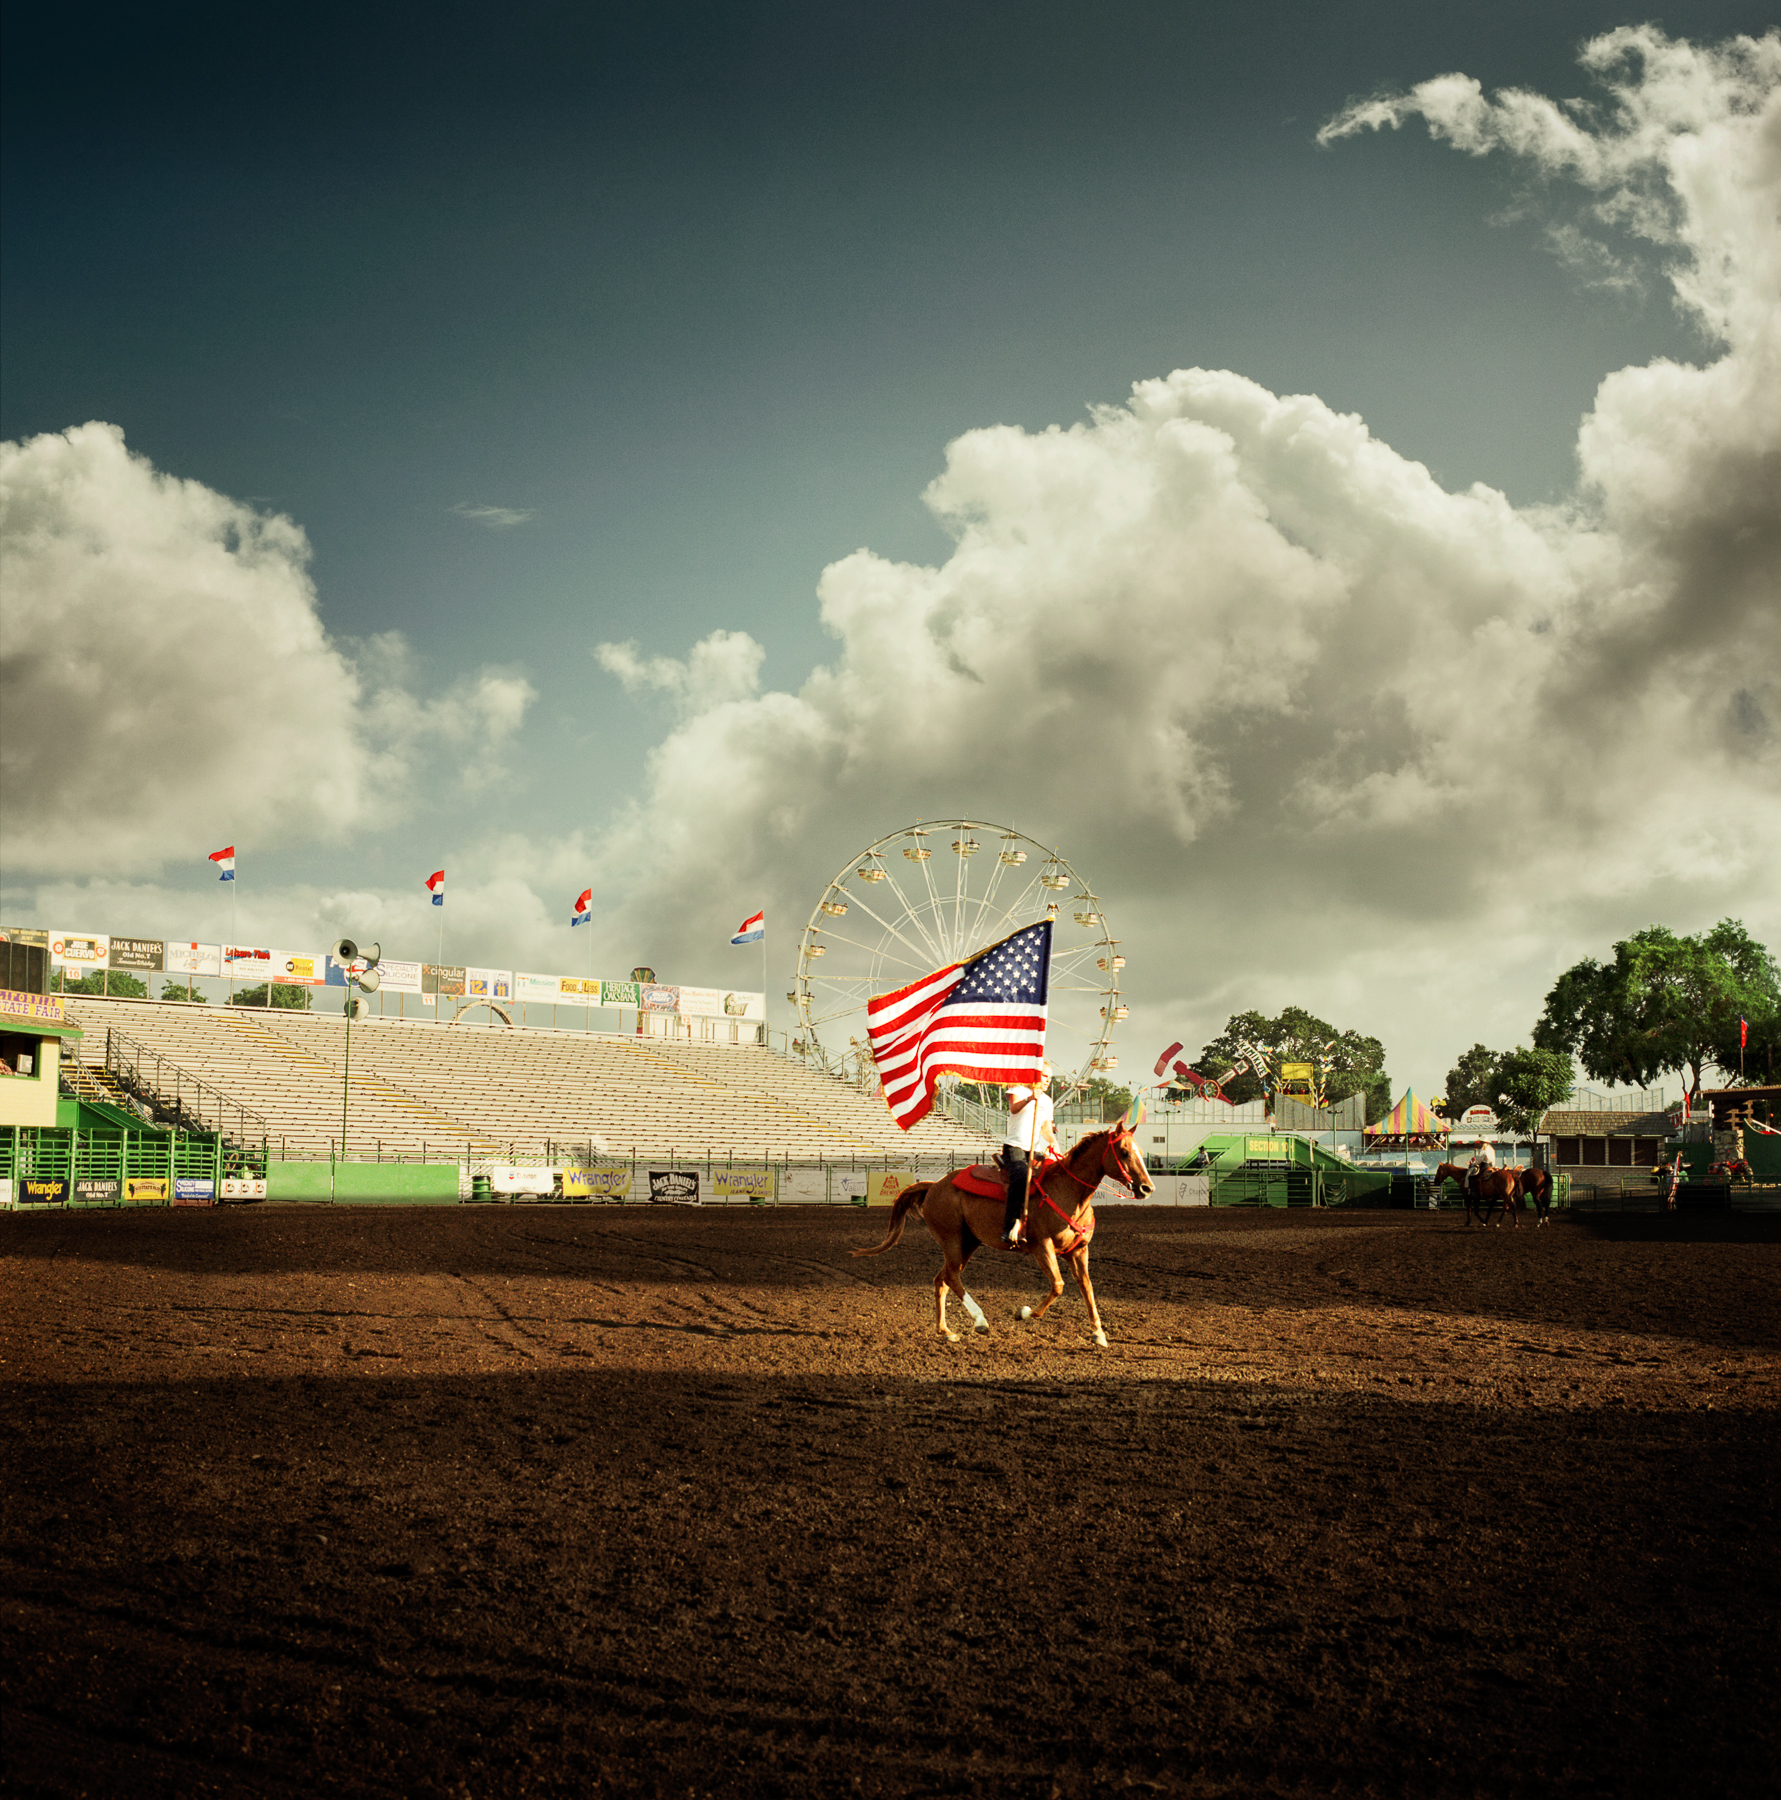 Road Trip - Man Riding a Horse Carrying a Flag at a Fair